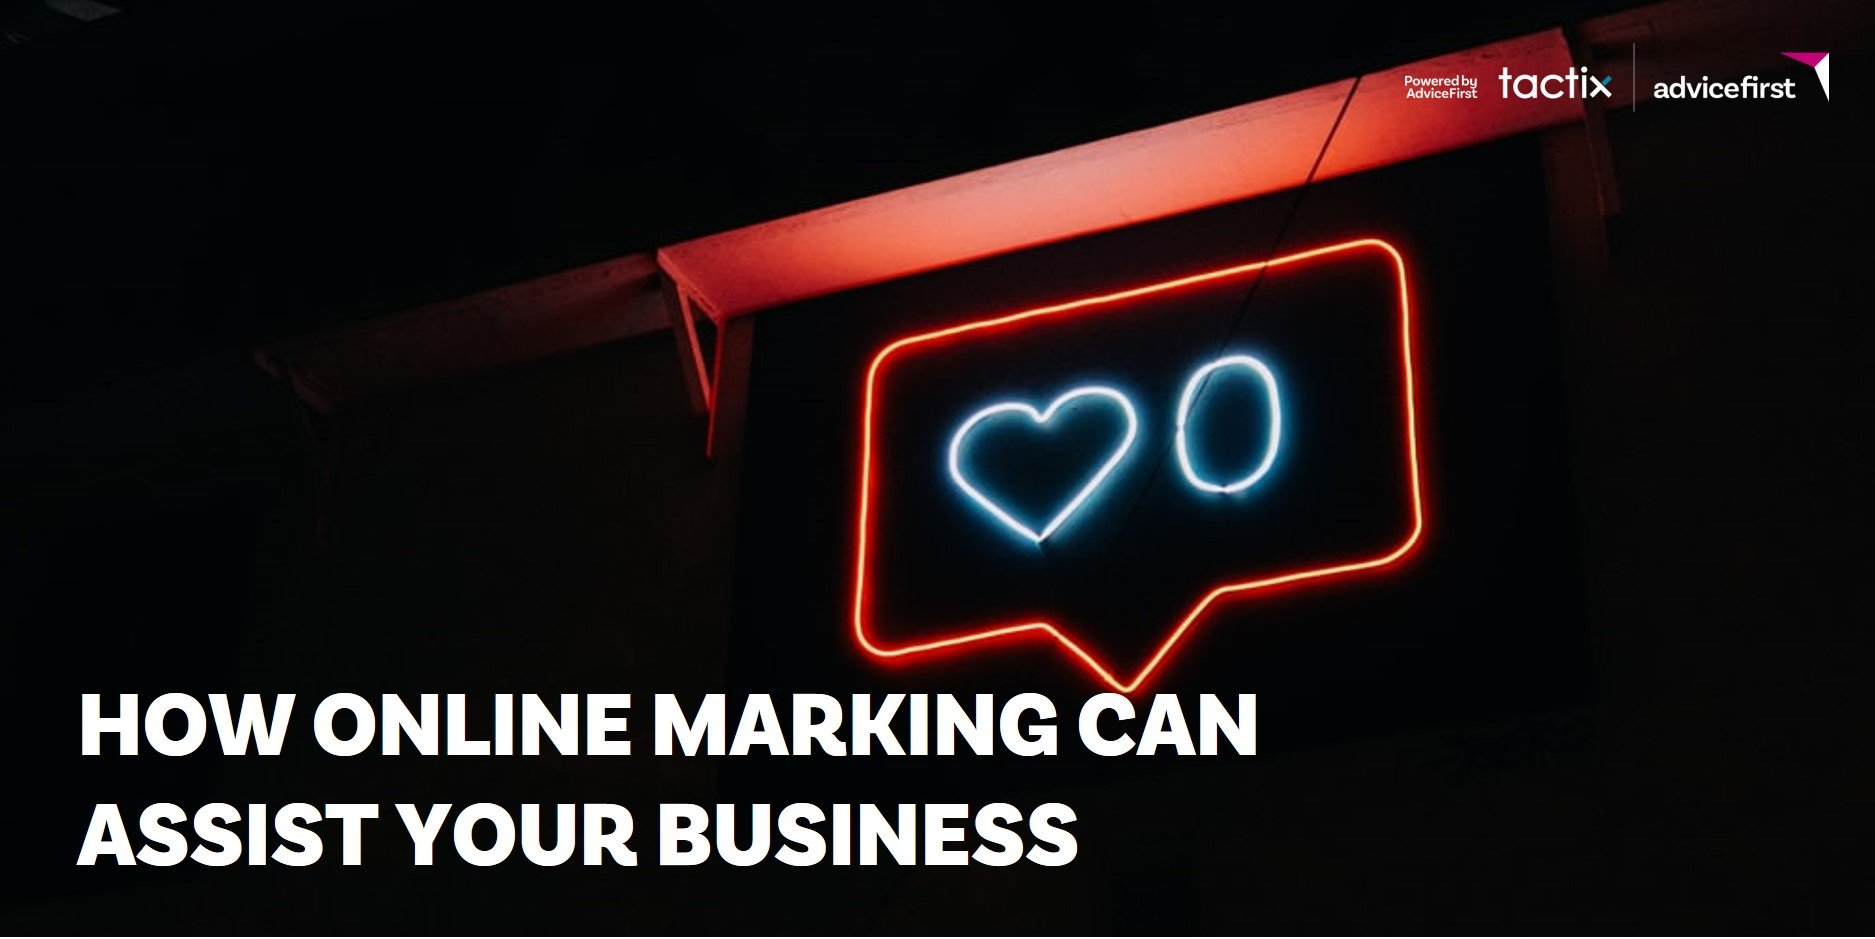 Understanding how online marketing can assist your business